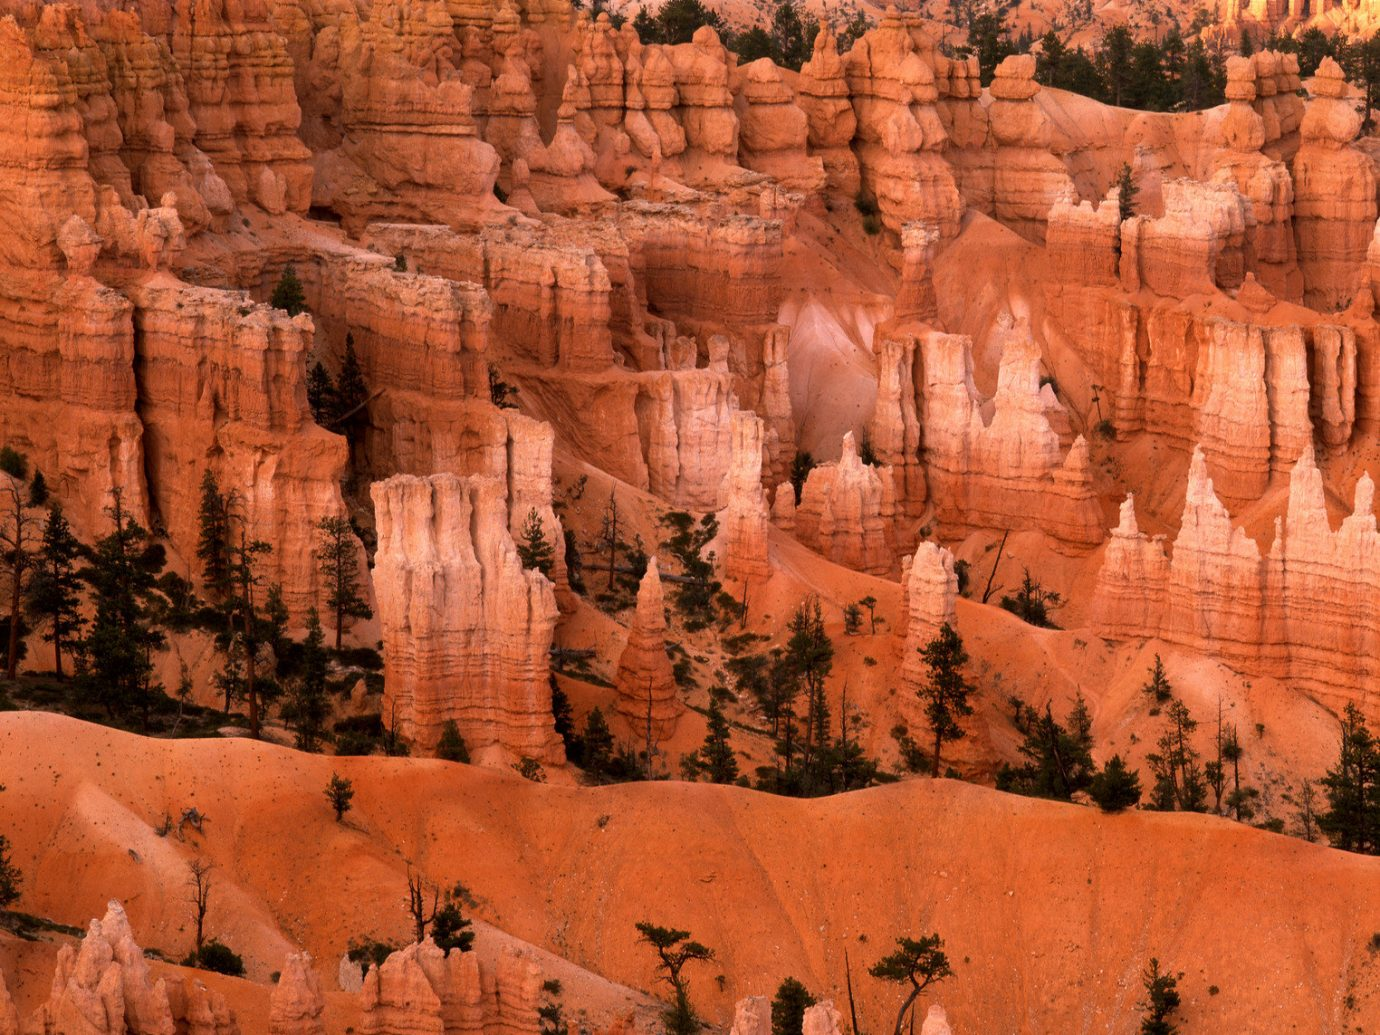 Road Trips Trip Ideas valley canyon Nature geographical feature landform mountain badlands wadi arch geology formation national park colored